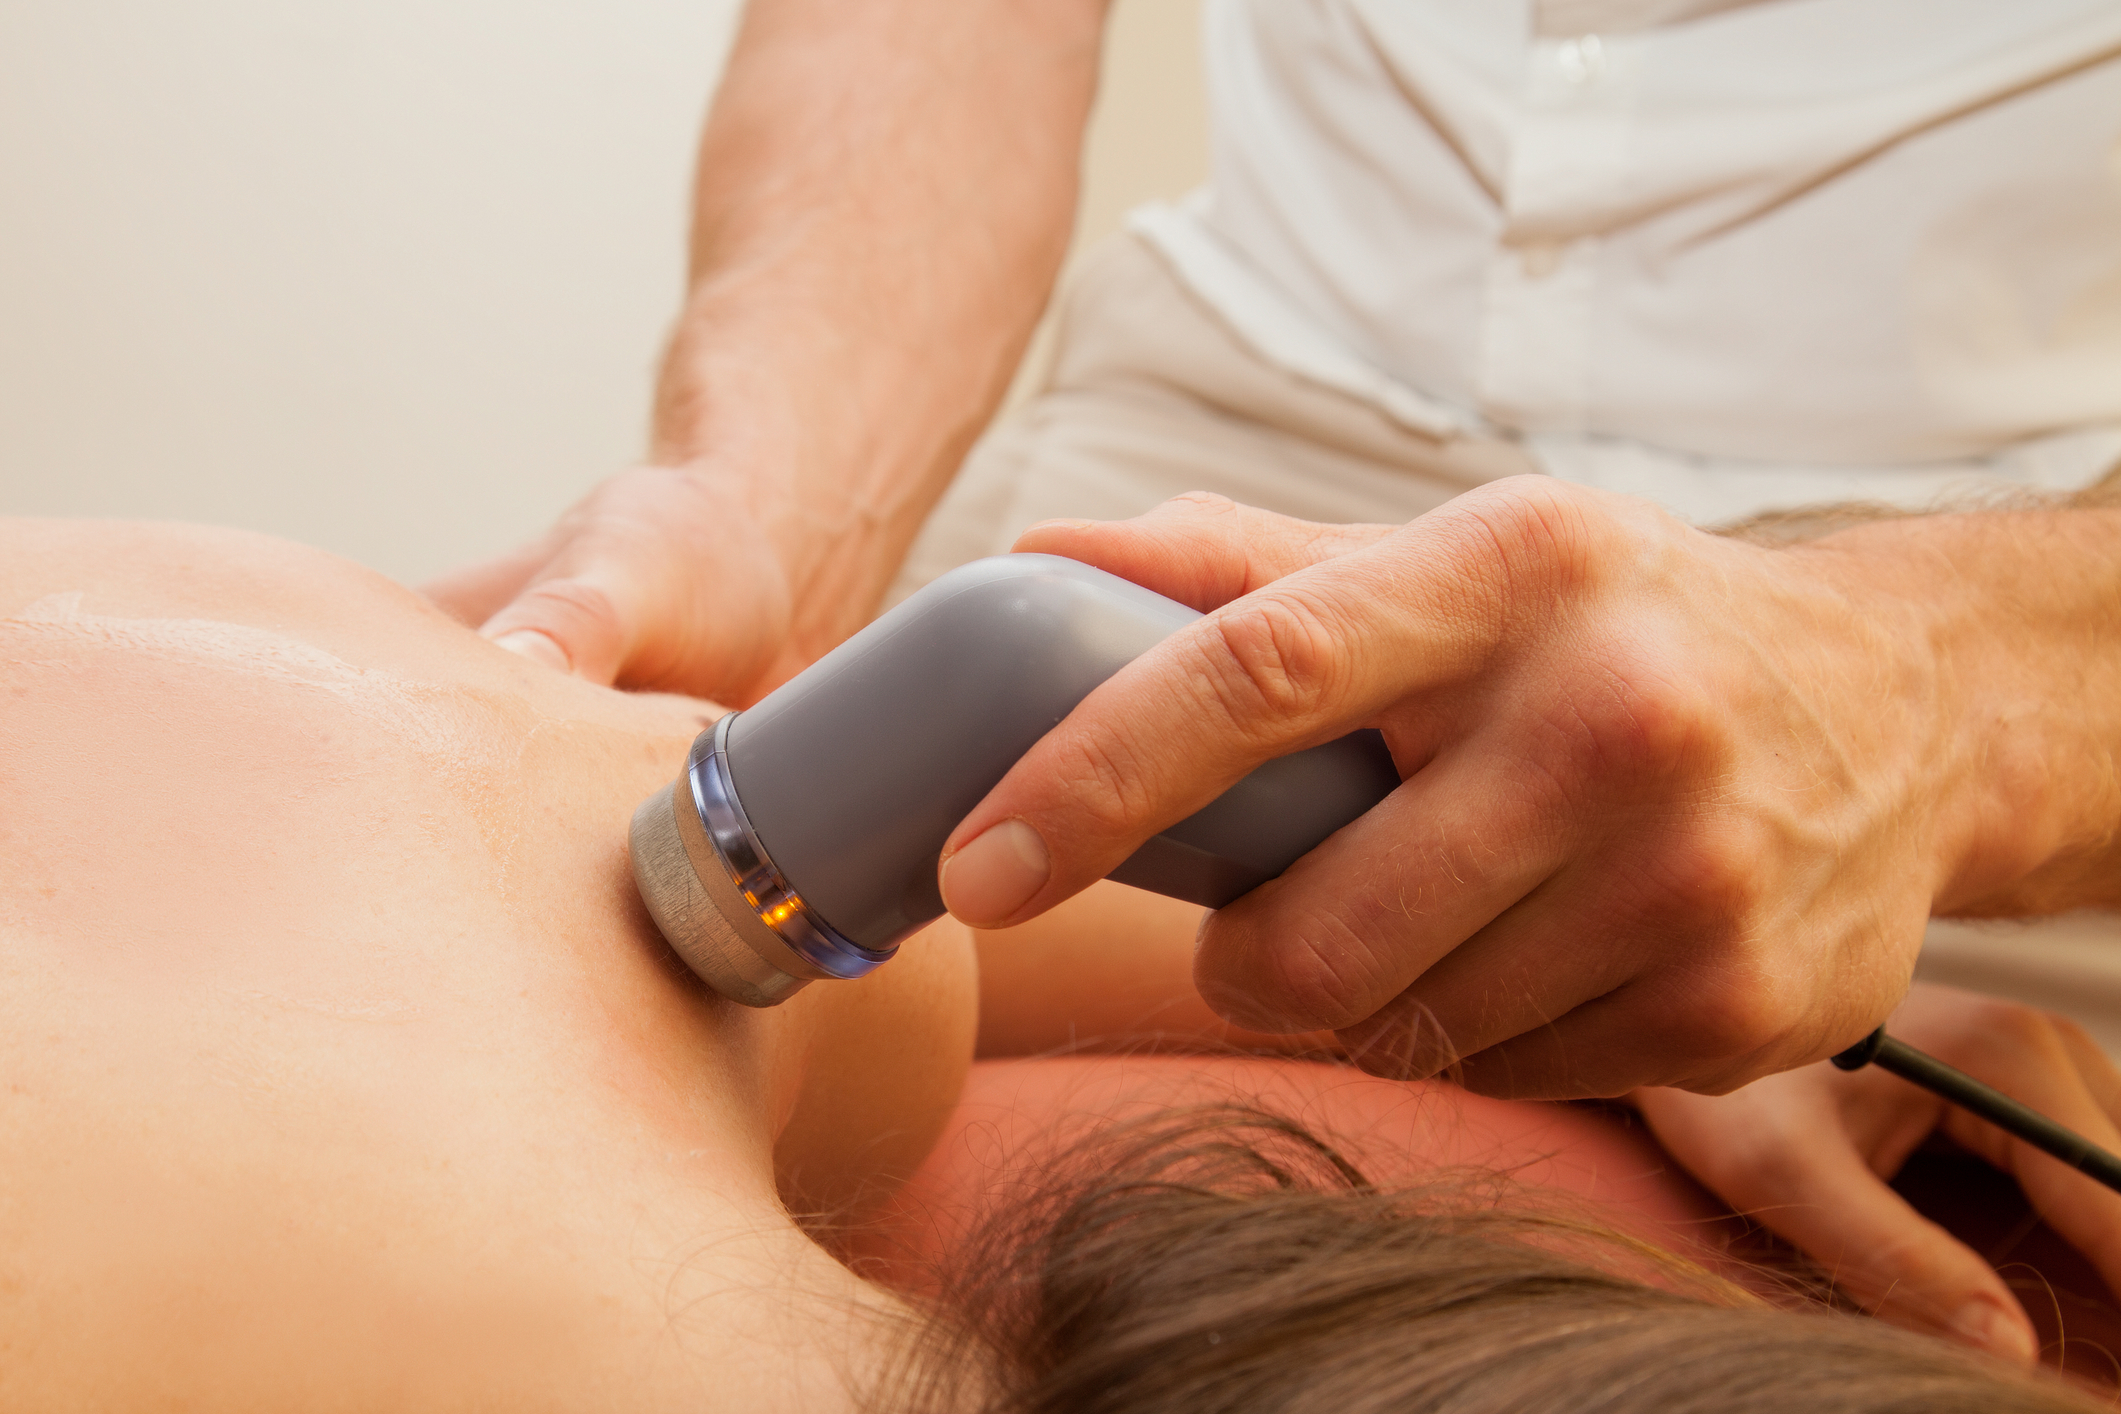 Ultrasound therapy - ithaca, ny - Dr. Jaclyn Borza Maher